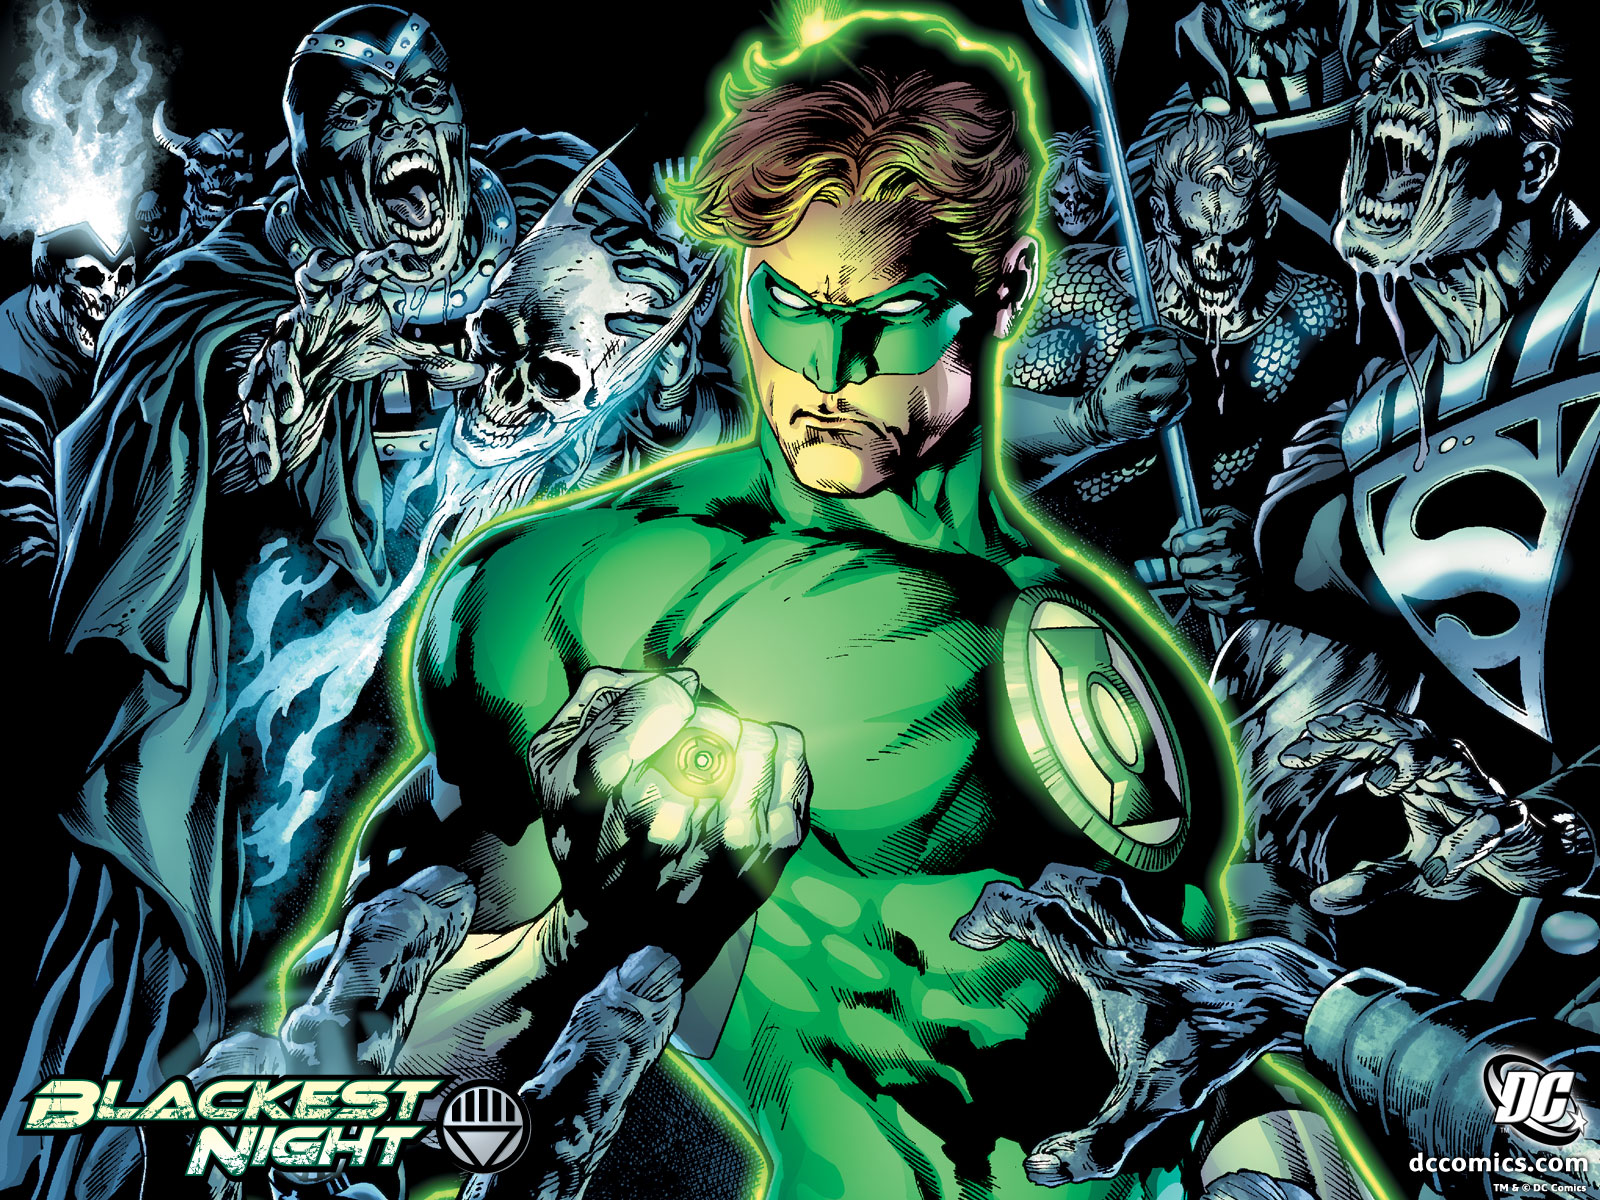 Amazing Blackest Night Pictures & Backgrounds